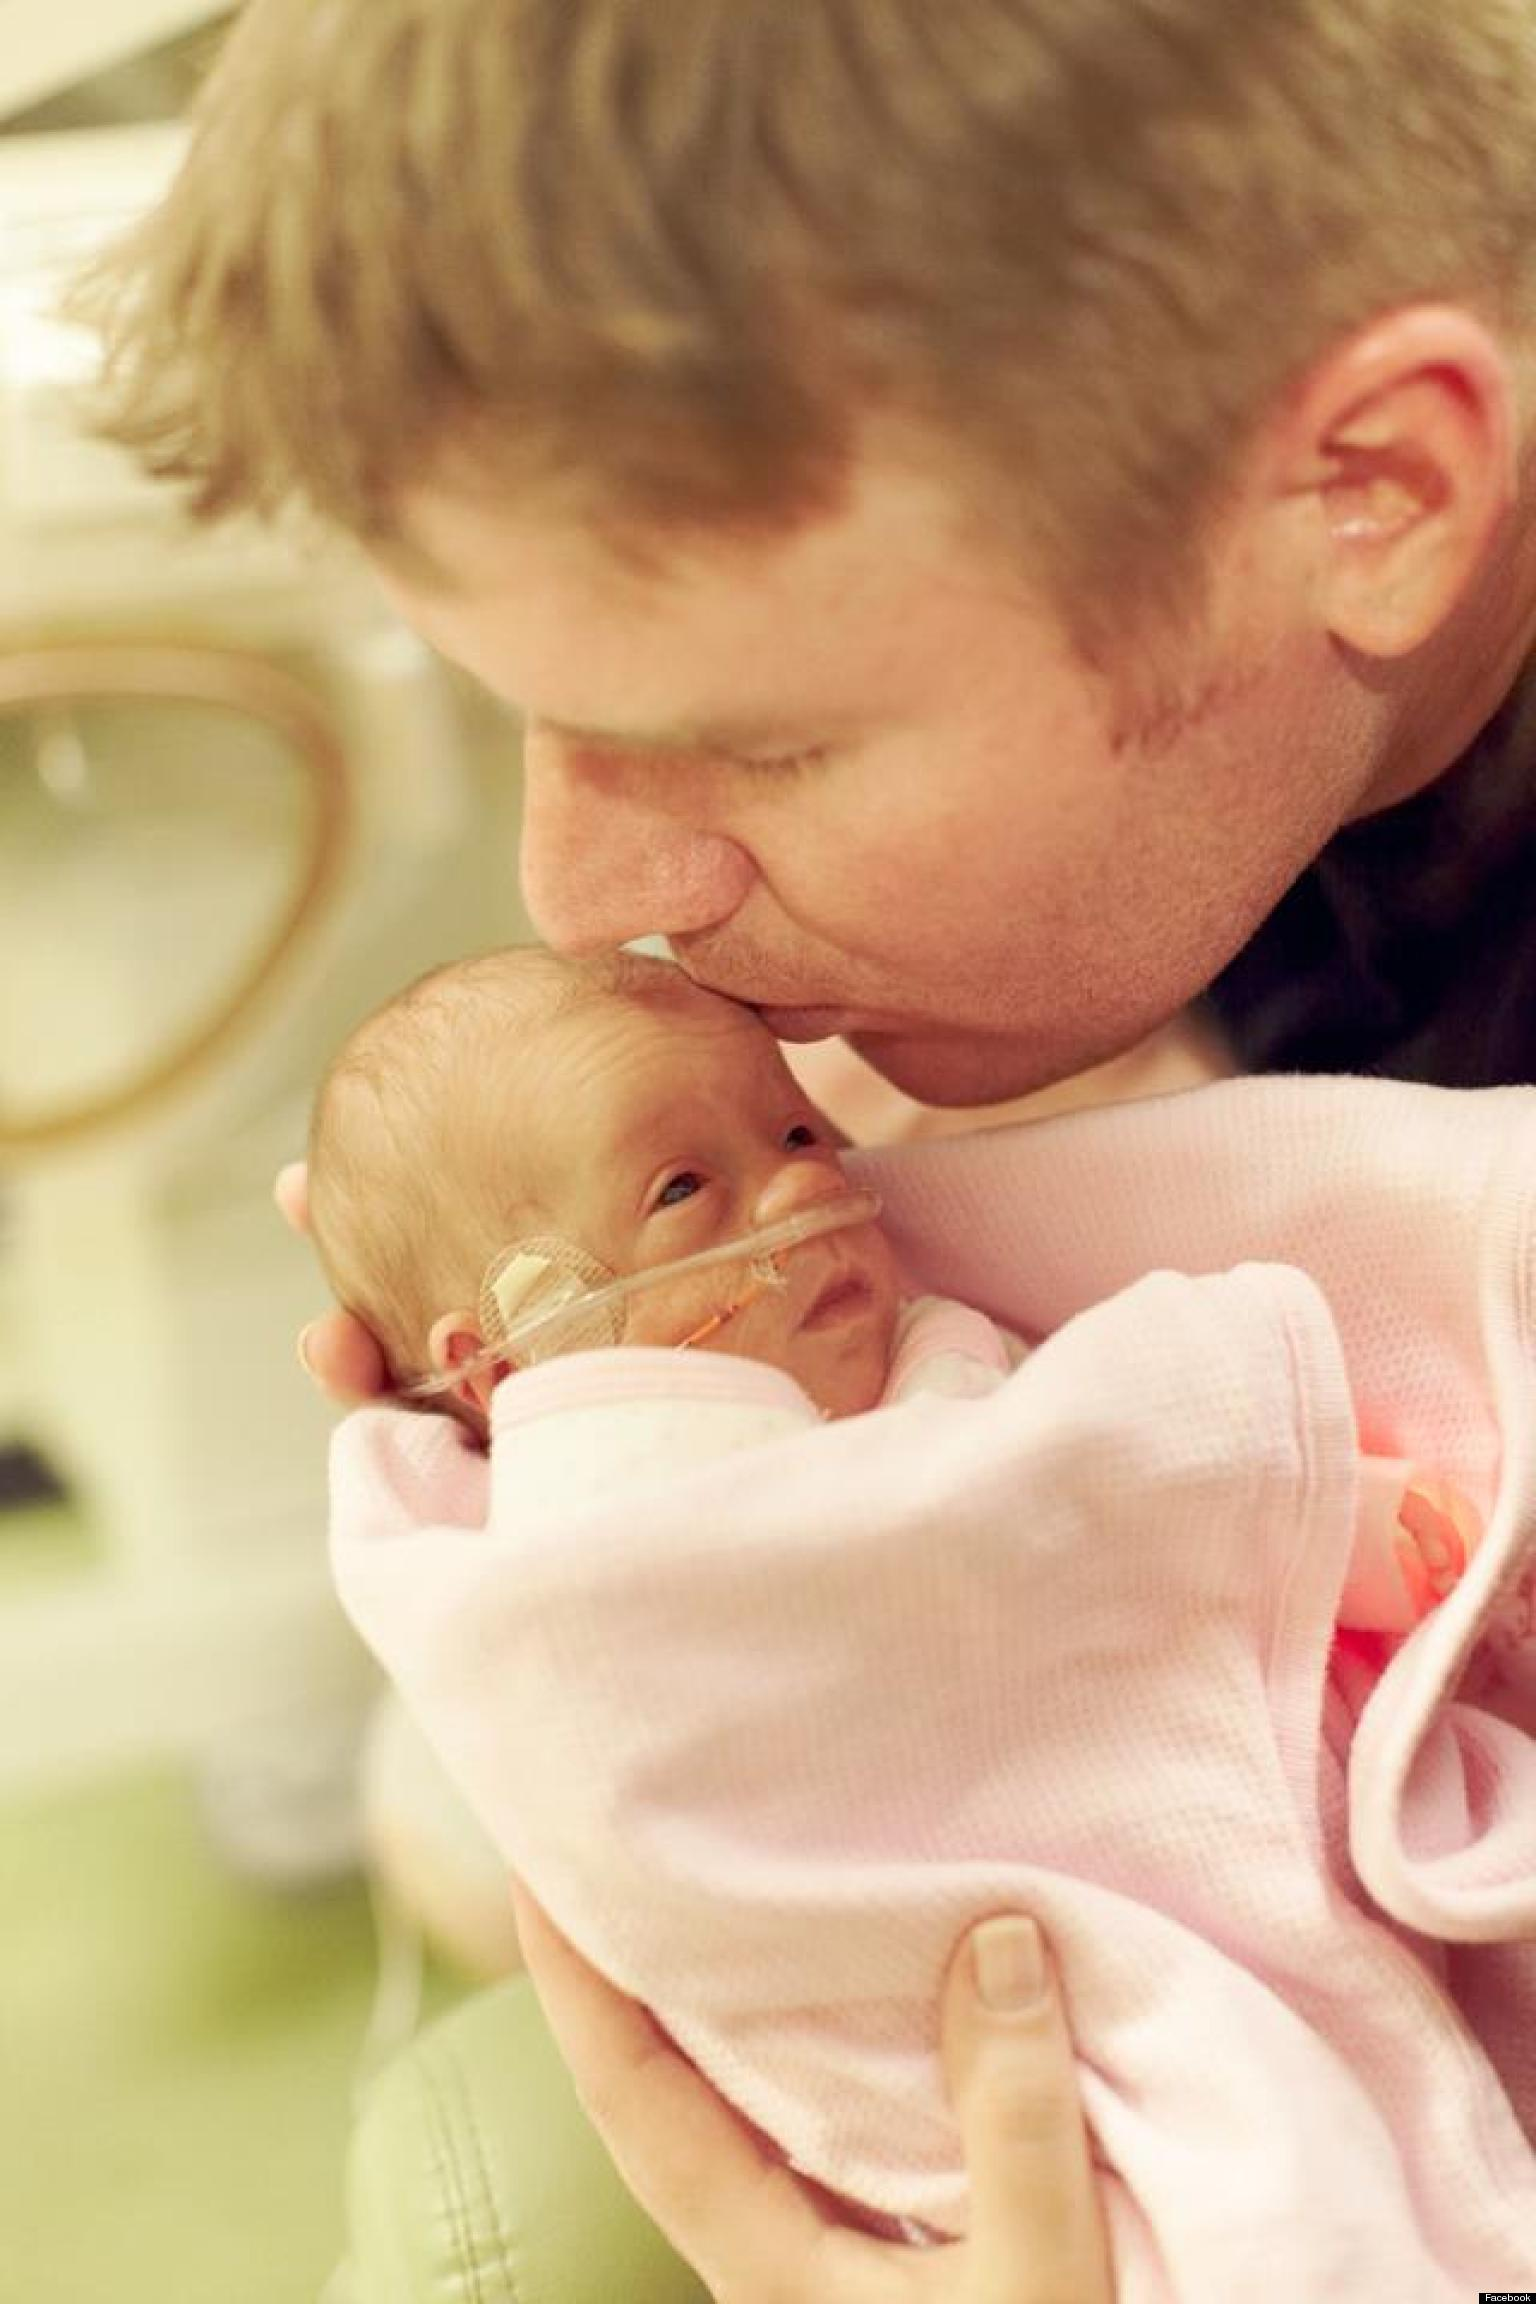 Ruby Love Lambright, Premature Baby Born At 1.6 Pounds ...